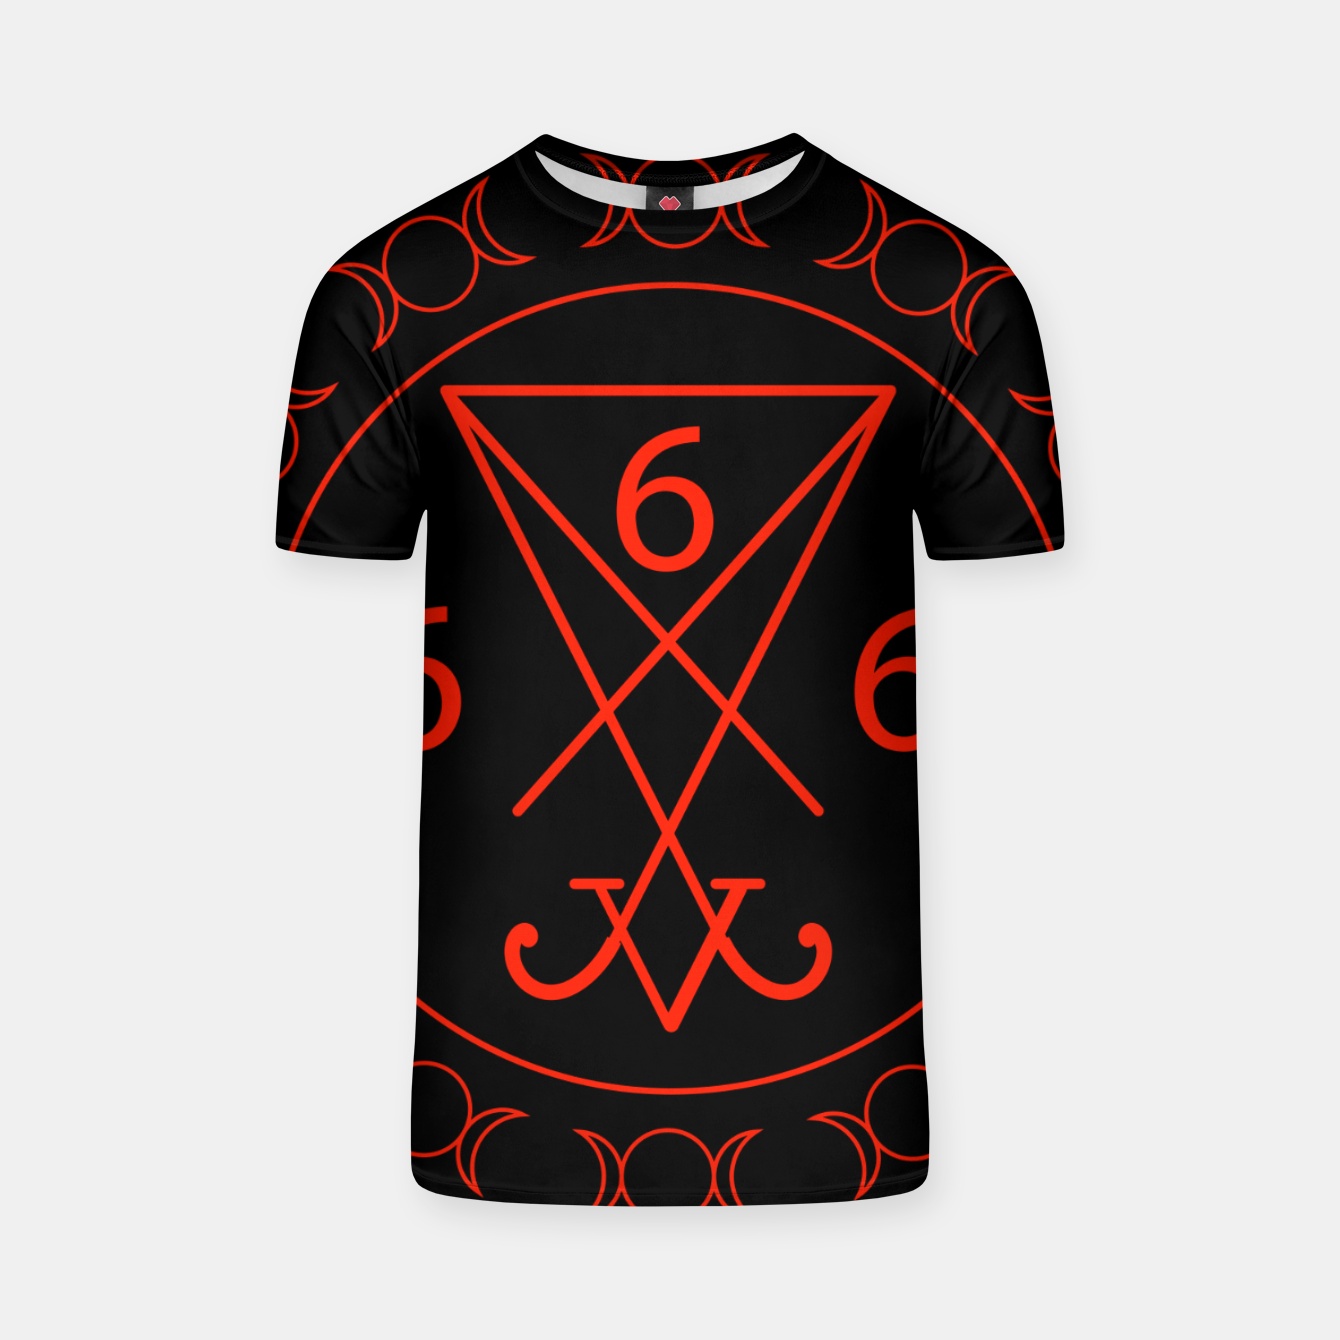 Zdjęcie 666- the number of the beast with the sigil of Lucifer symbol T-shirt - Live Heroes